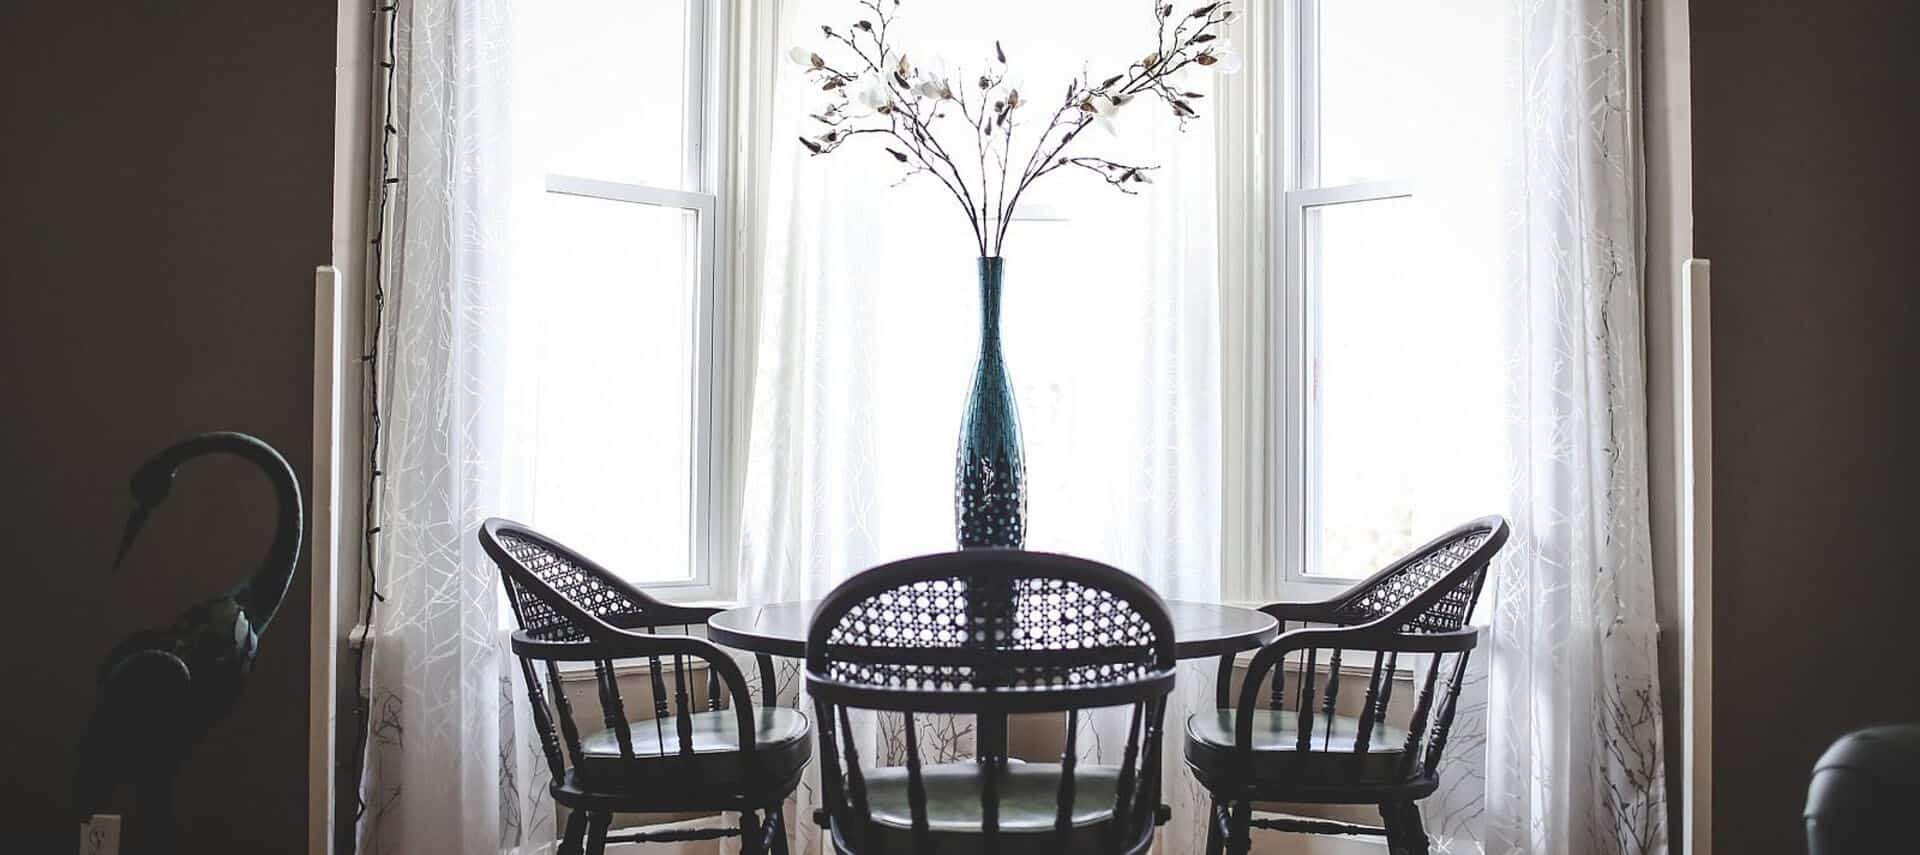 Small table and chairs set in front of a bow window with gauze curtains.